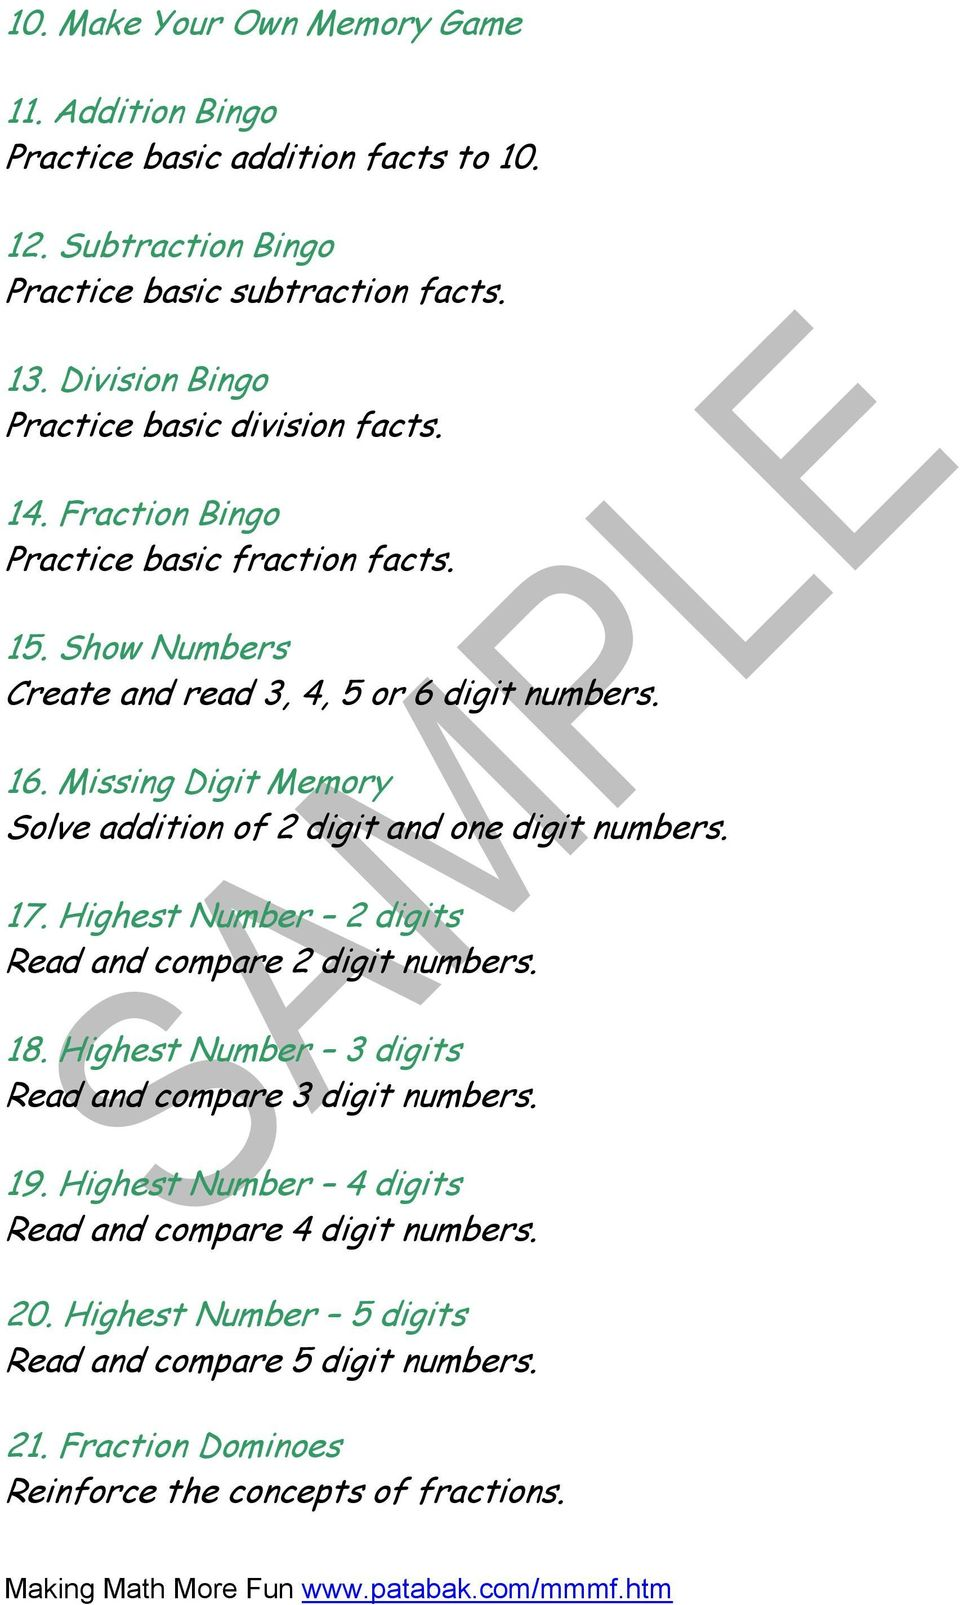 Missing Digit Memory Solve addition of 2 digit and one digit numbers. 1. Highest Number 2 digits Read and compare 2 digit numbers. 18.